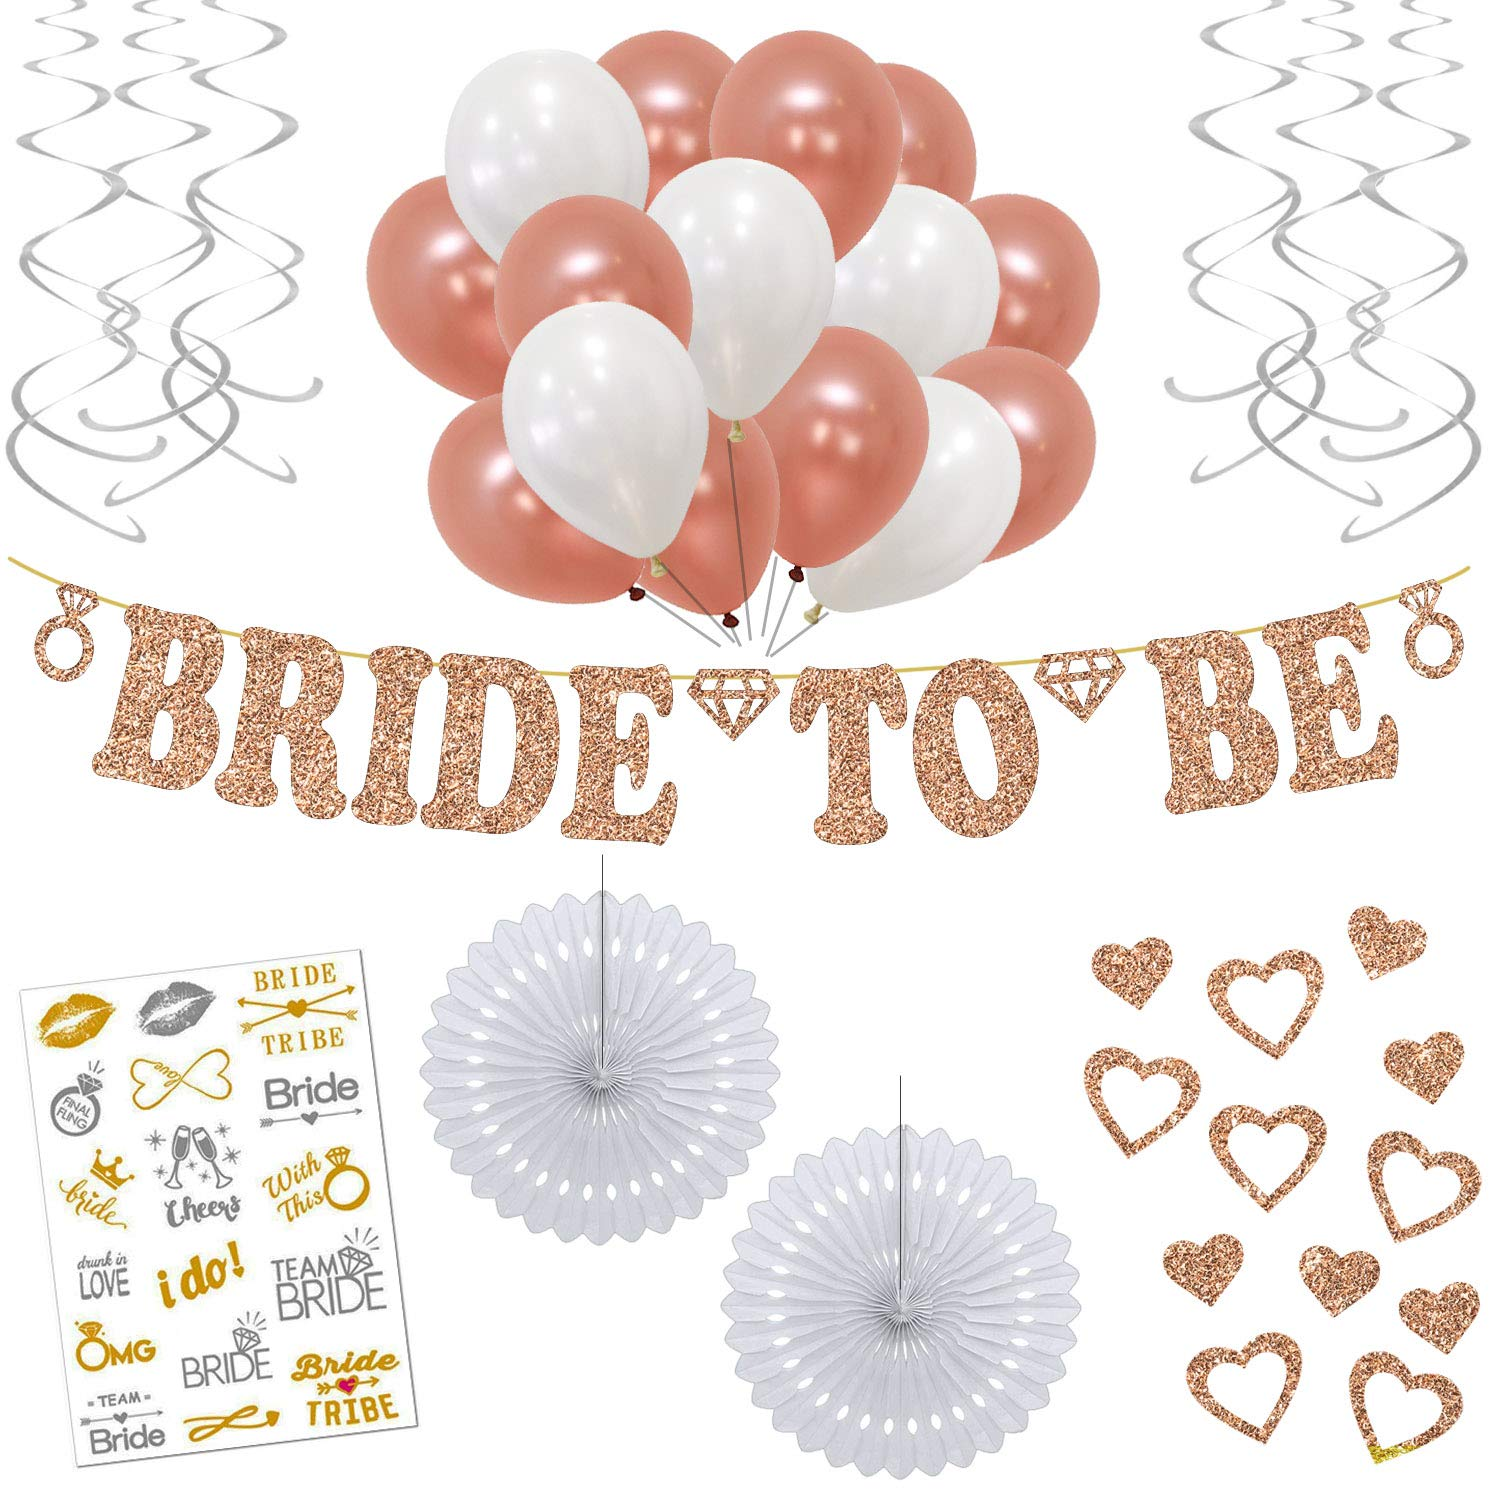 Rose Gold Bachelorette Party Decorations - 55 Piece Decoration Set with Real Rose Gold Glitter Bride to Be Banner, Rose Gold & White Balloons, Bridal Tattoos and Other Bridal & Wedding Shower Supplies